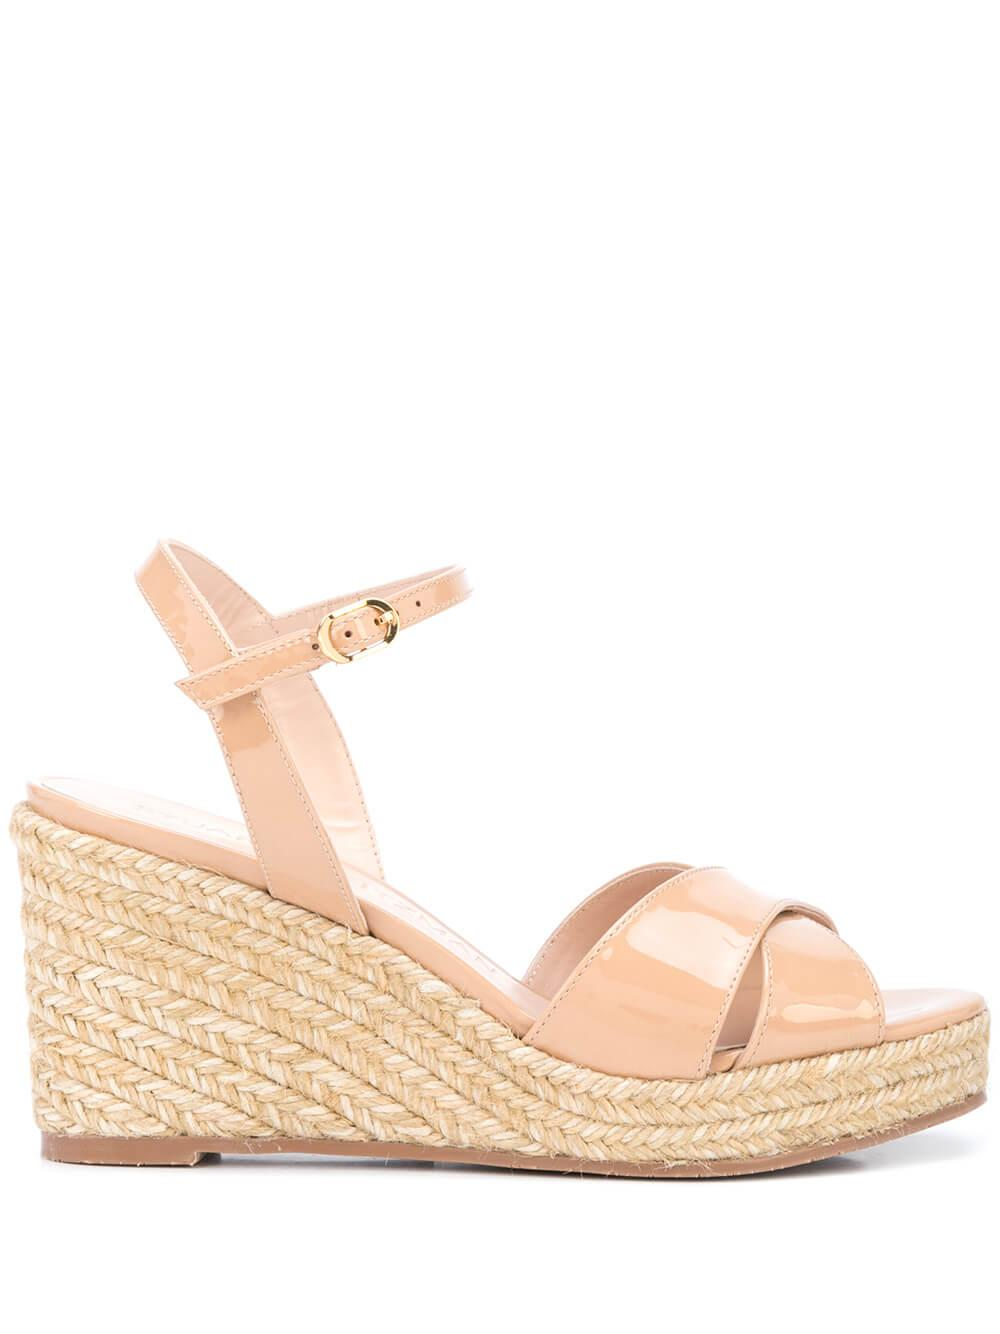 Patent 75MM Wedge Platform Sandal With S